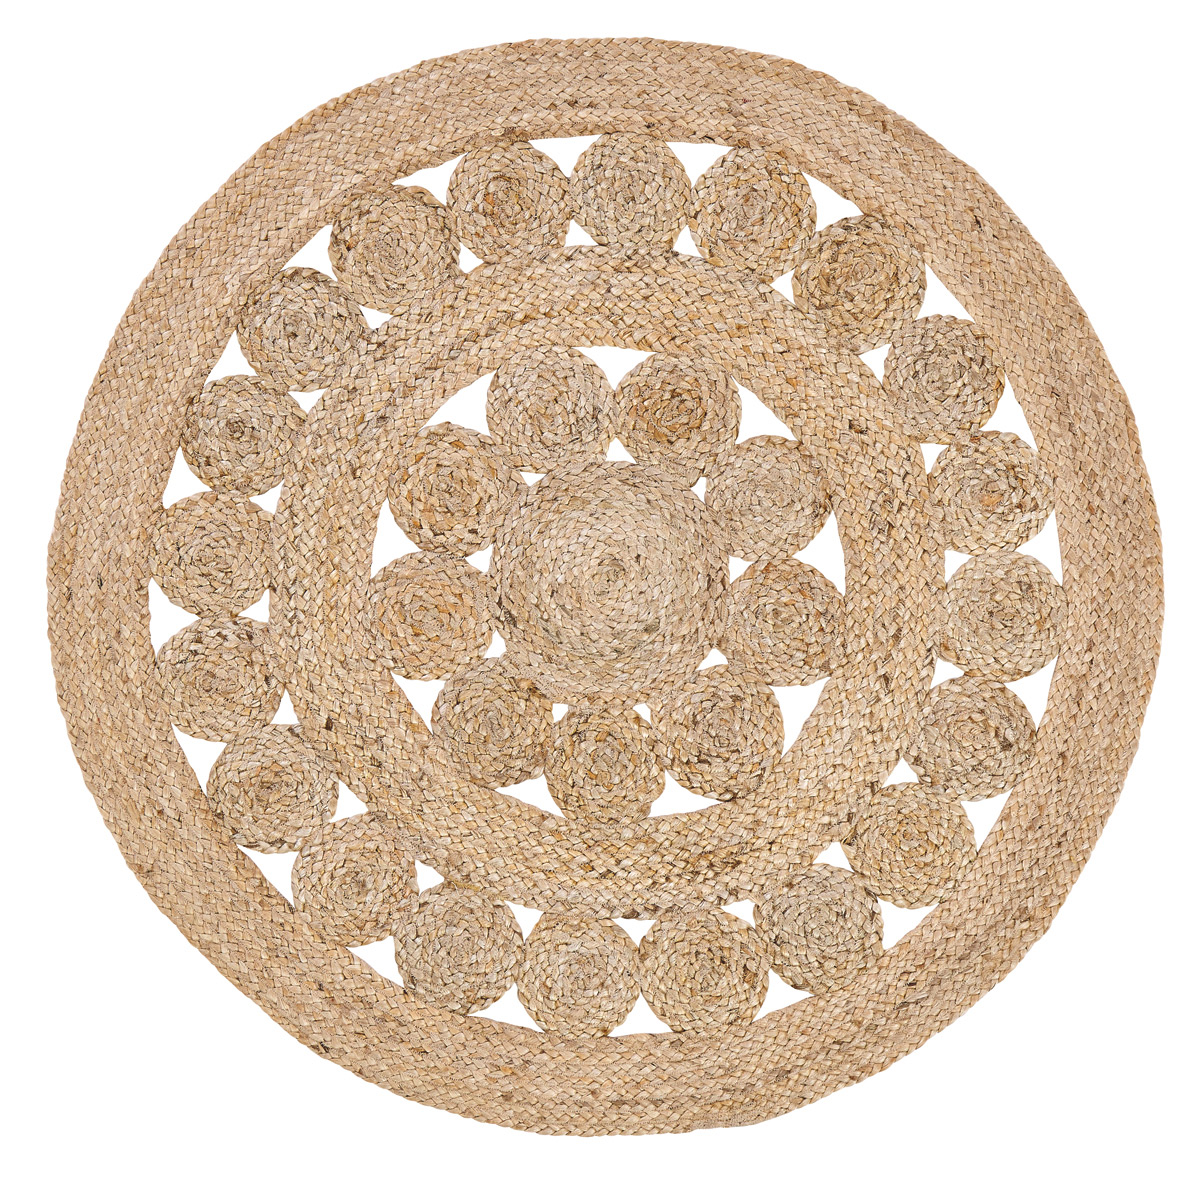 Celeste Round 3 Foot Jute Rug By Vhc Brands The Weed Patch